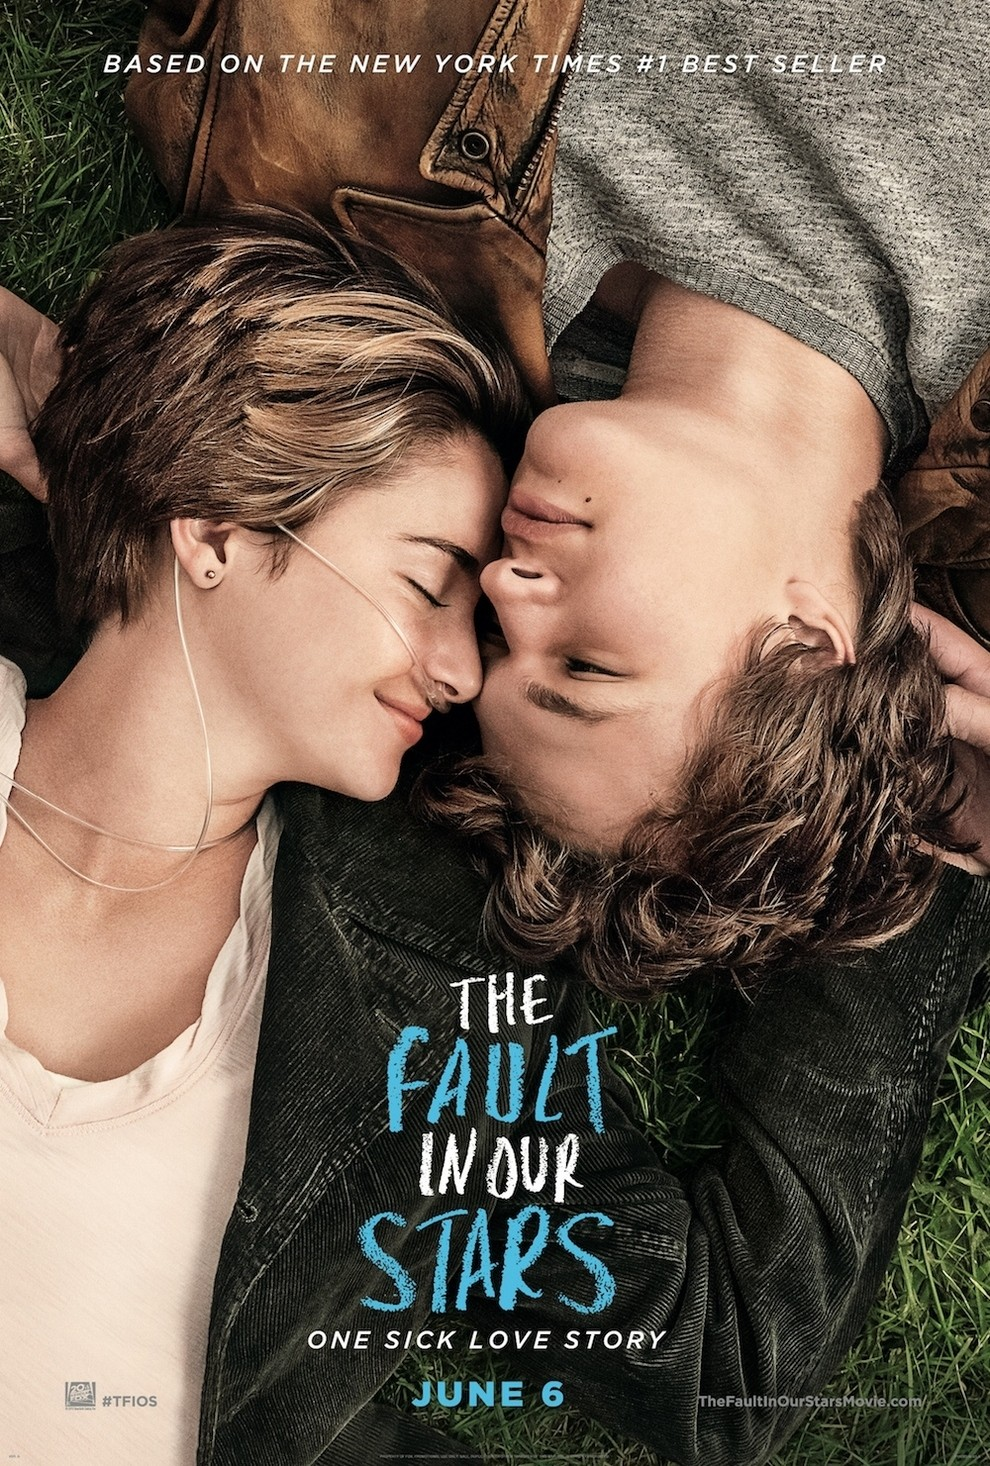 Shailene Woodley Would Have Picked A Different Tagline For The Fault In Our Stars